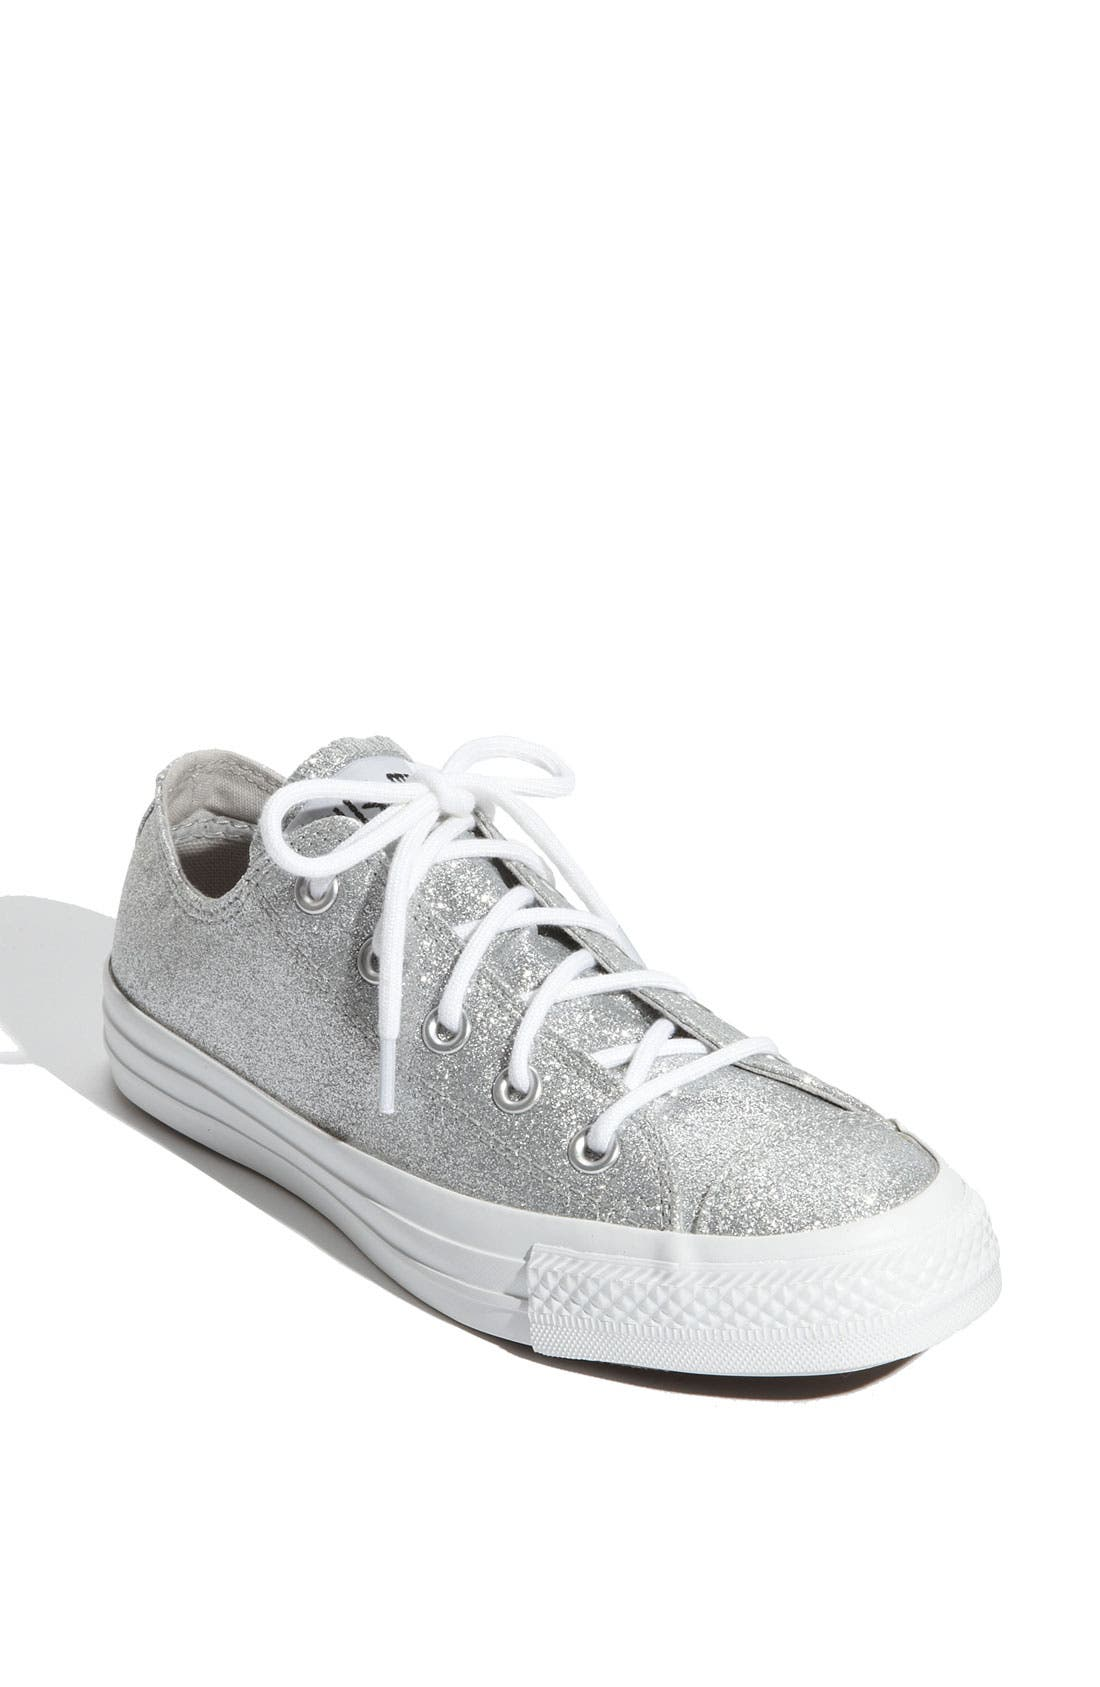 Alternate Image 1 Selected - Converse Chuck Taylor® 'Winter Glitz' Sneaker